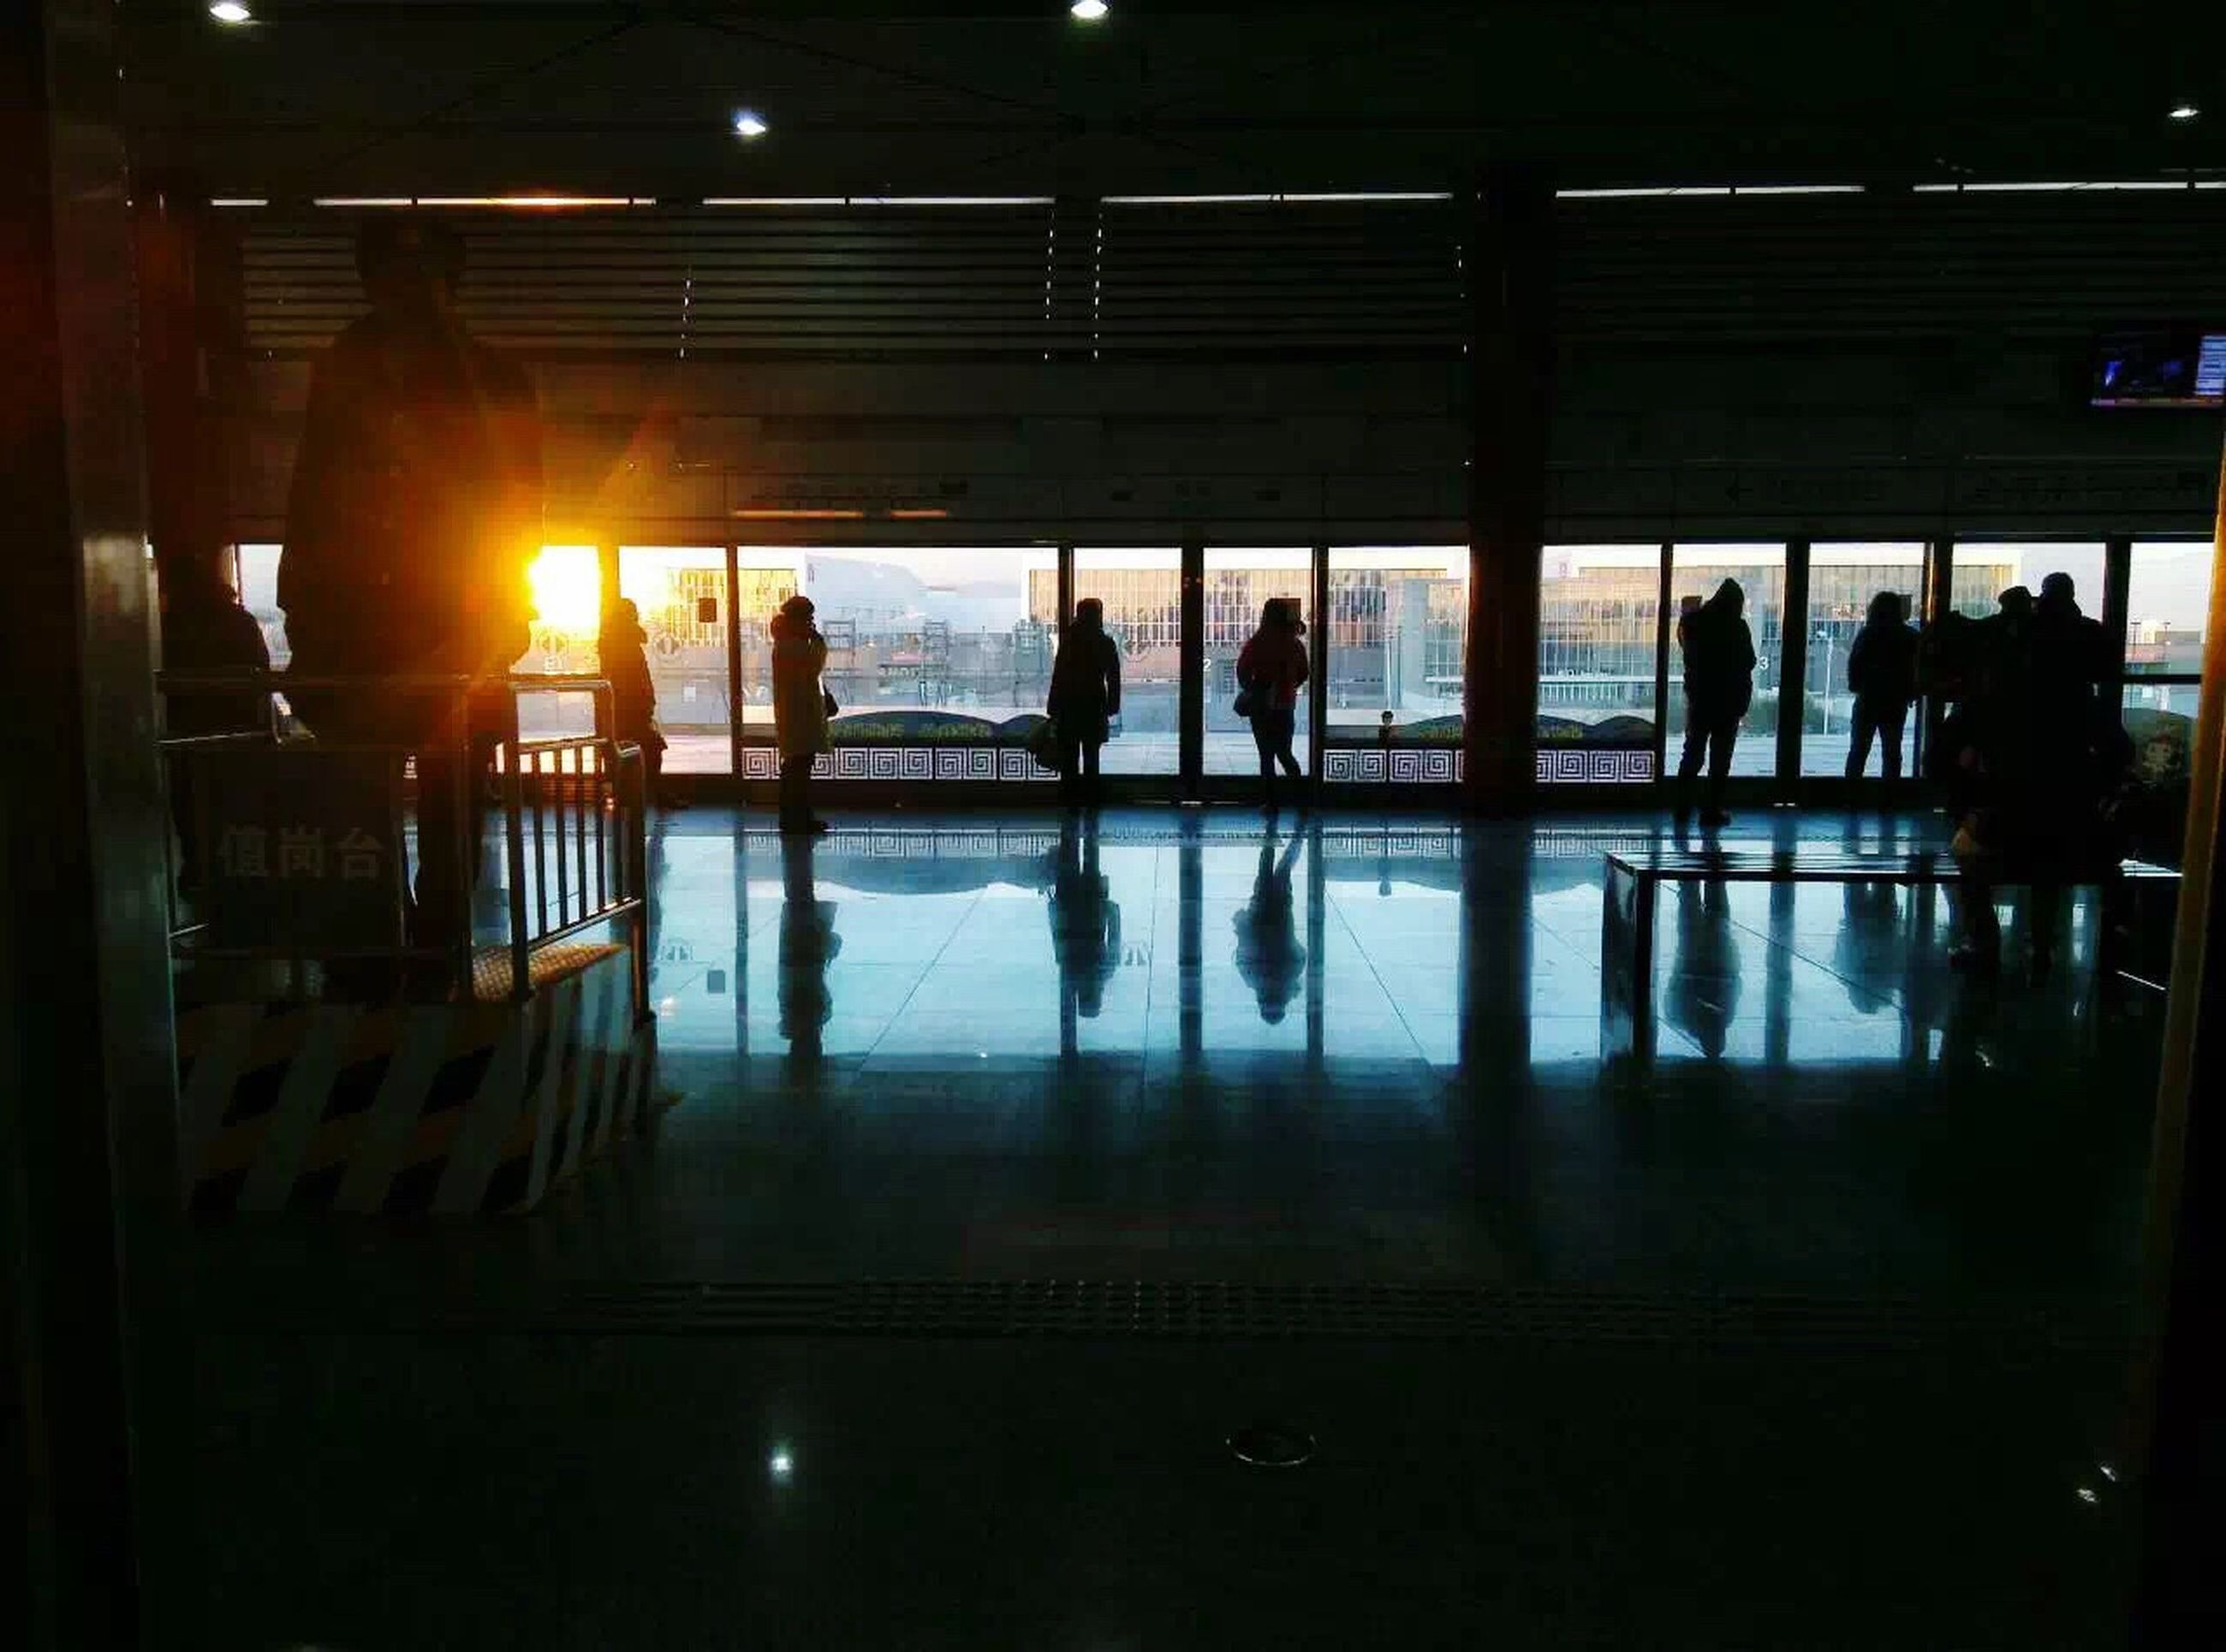 indoors, men, illuminated, architecture, lifestyles, built structure, large group of people, person, railroad station, reflection, silhouette, public transportation, airport, medium group of people, travel, sunset, walking, railroad station platform, transportation